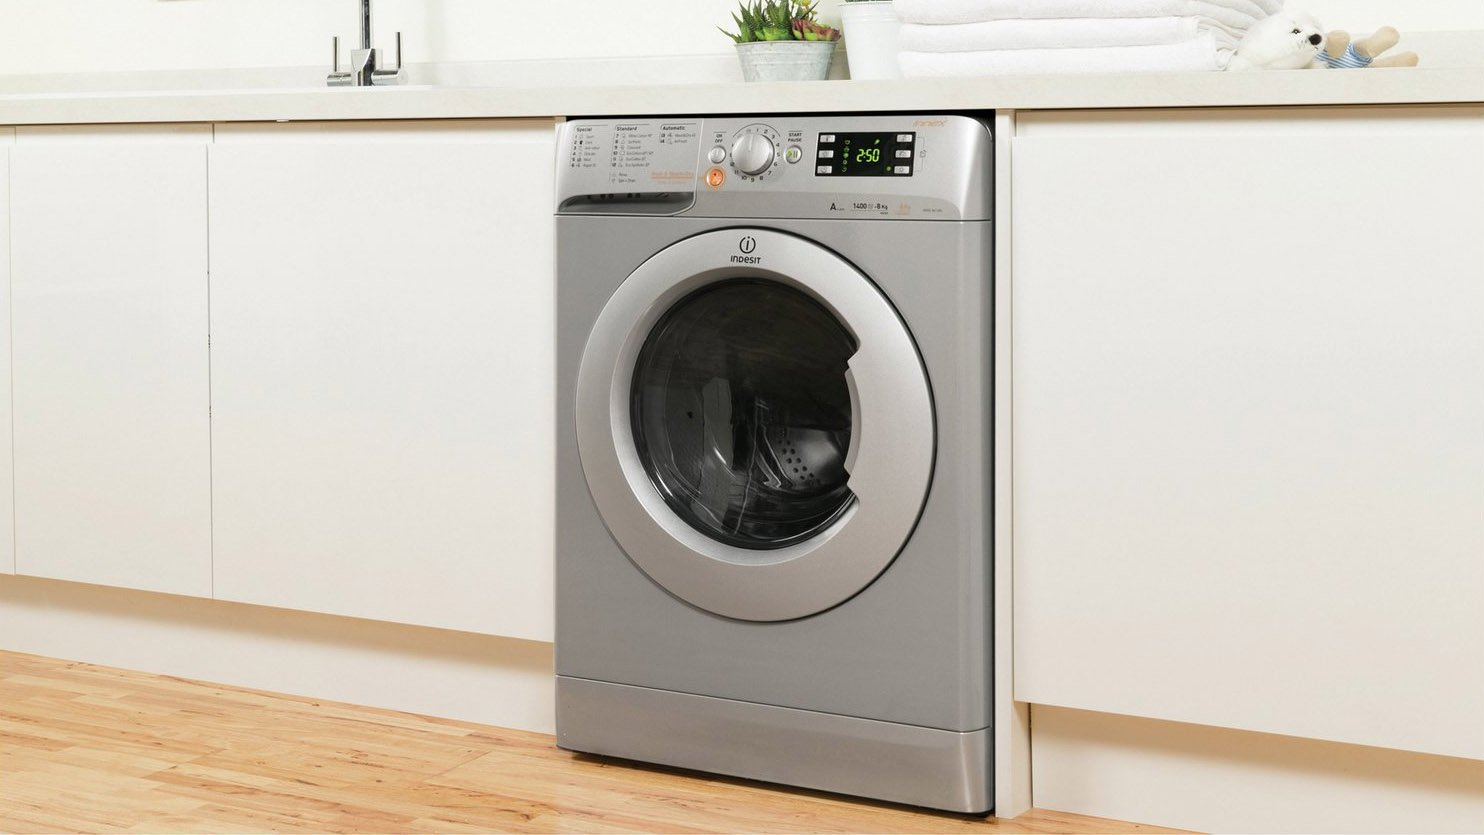 Best washer dryer 2019: The best integrated washer dryer combos from